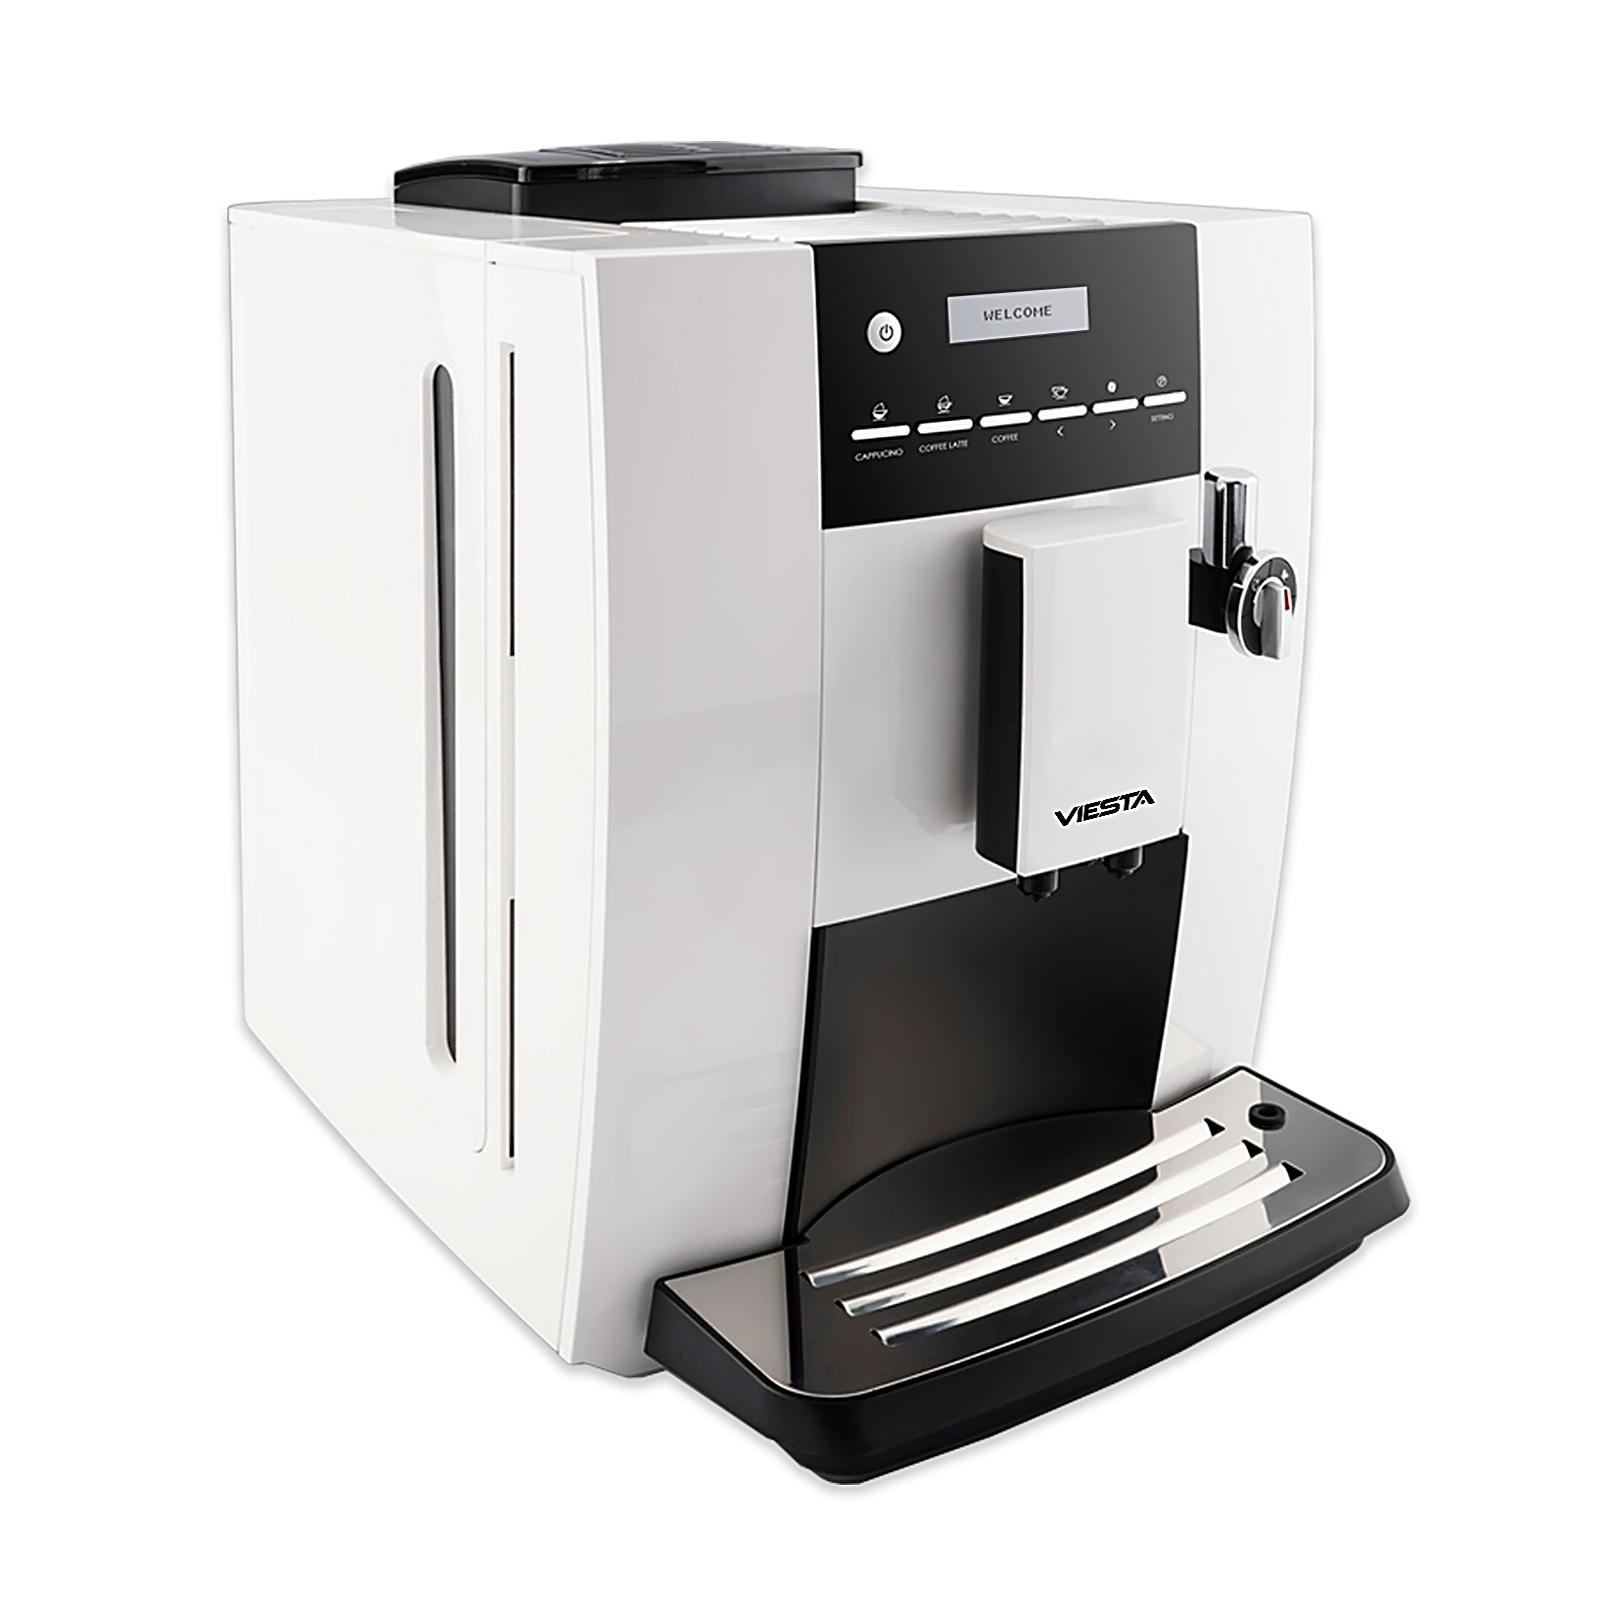 Viesta cb350 plus fully automatic coffee machine for for Kaffeevollautomat 200